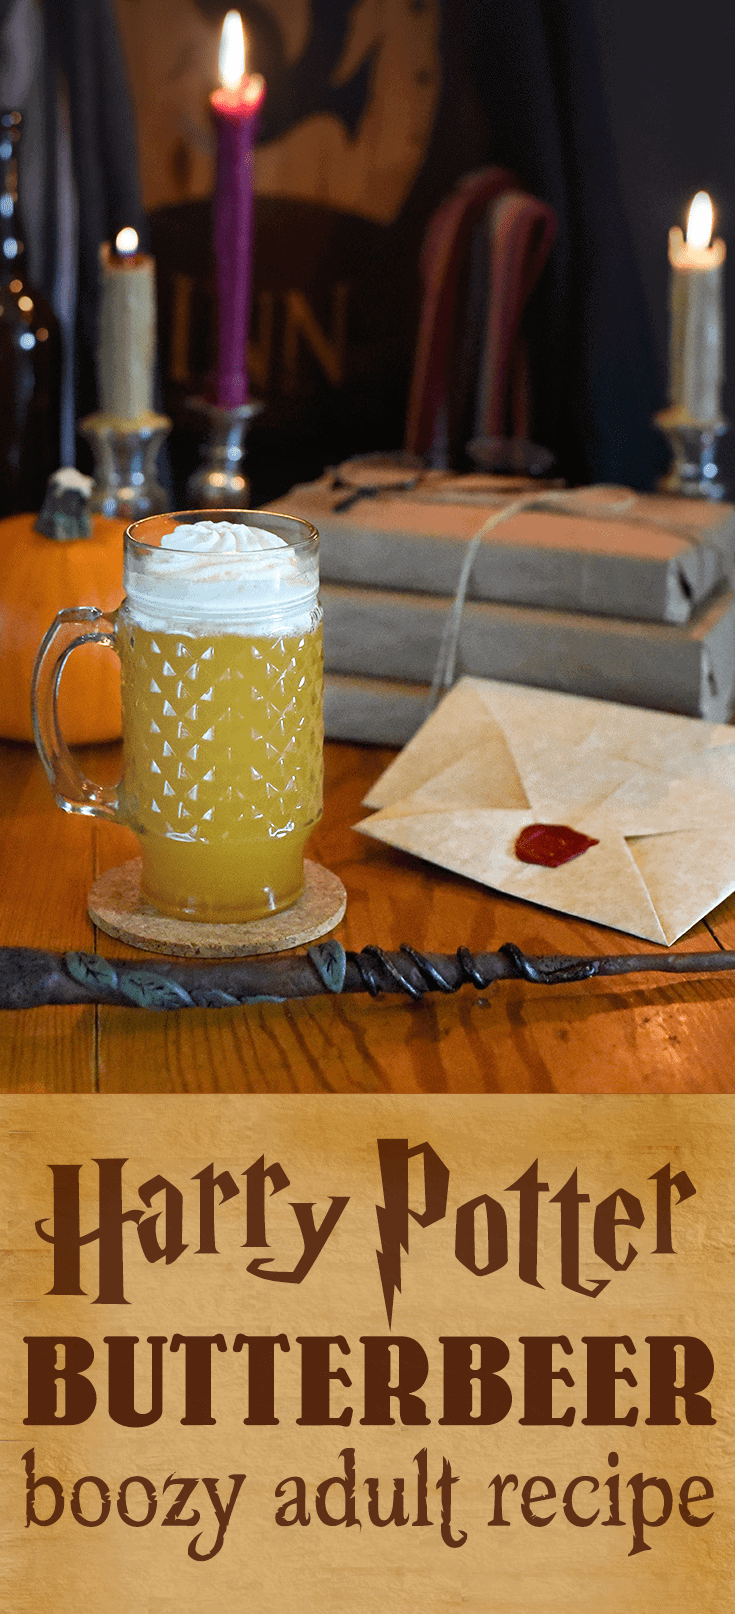 Take an adult trip to Hogsmeade! This boozy take on #butterbeer recipe will give you the feeling of being in the world of Harry Potter, but with an adult twist. #butterbeer #cocktail #boozy #harrypotter #cocktailrecipes